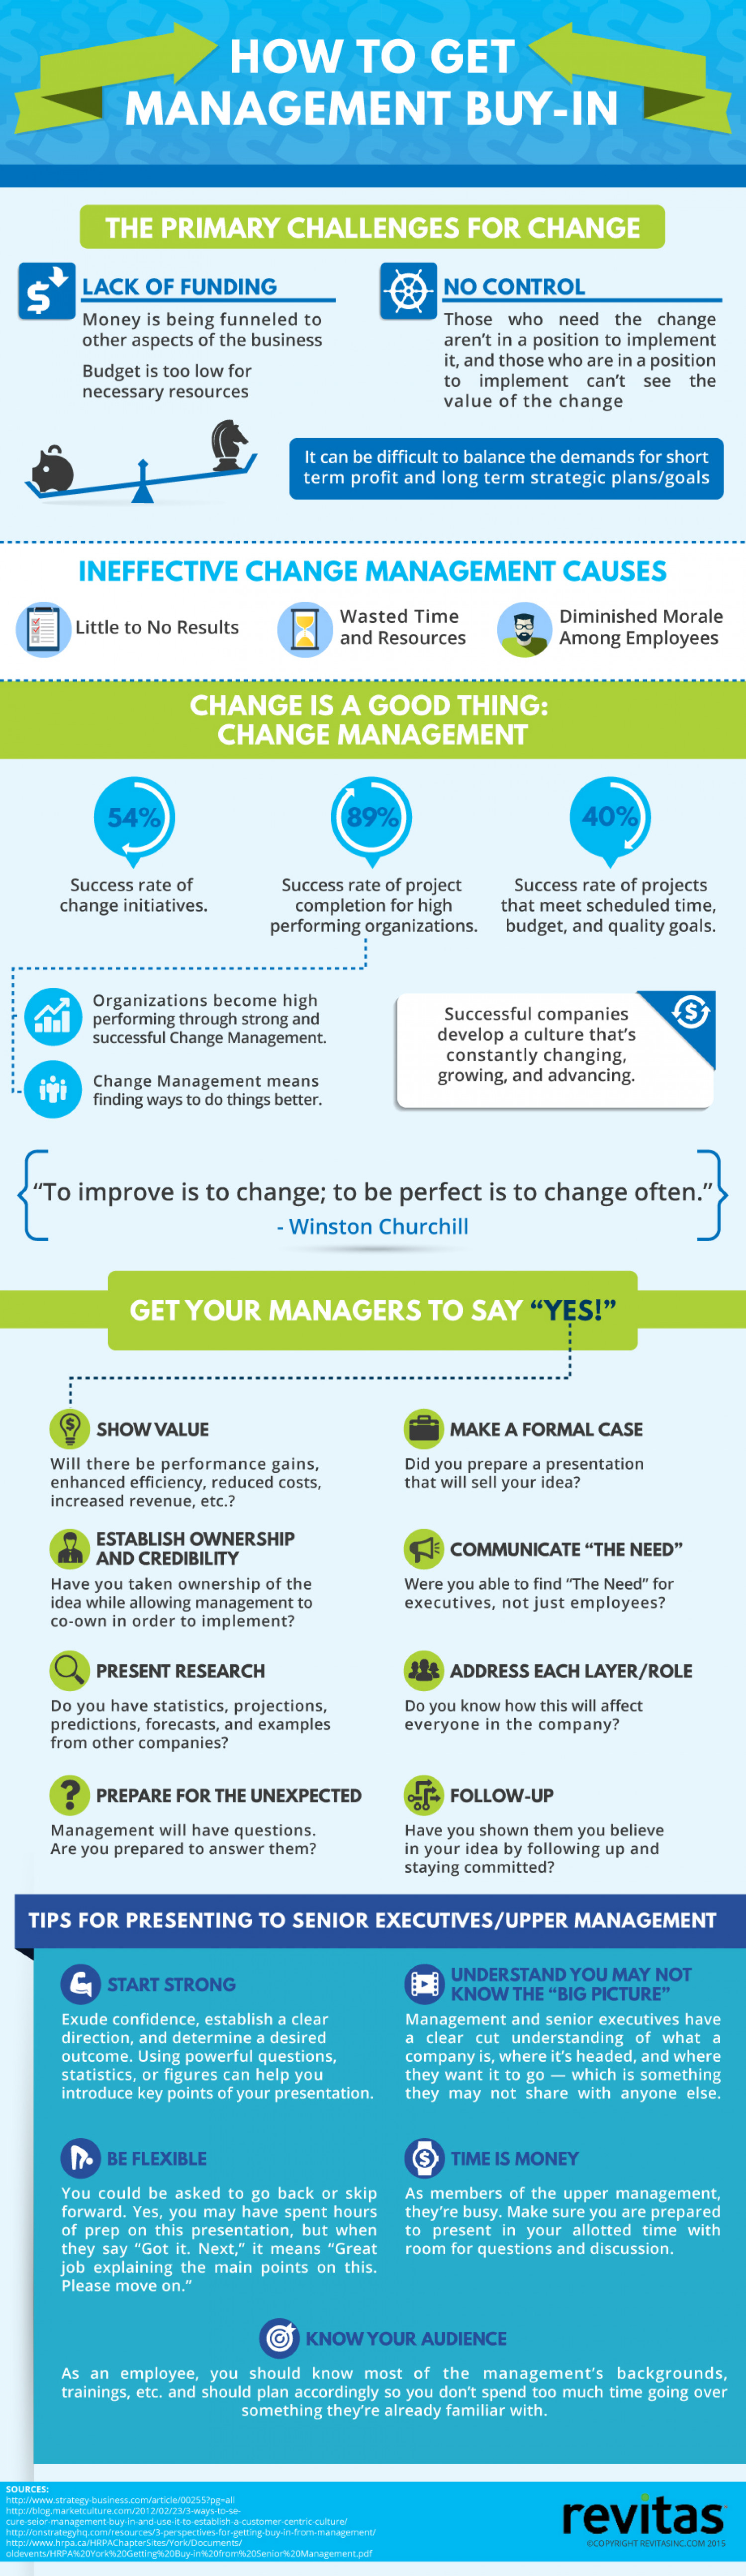 management changes affects employee morale